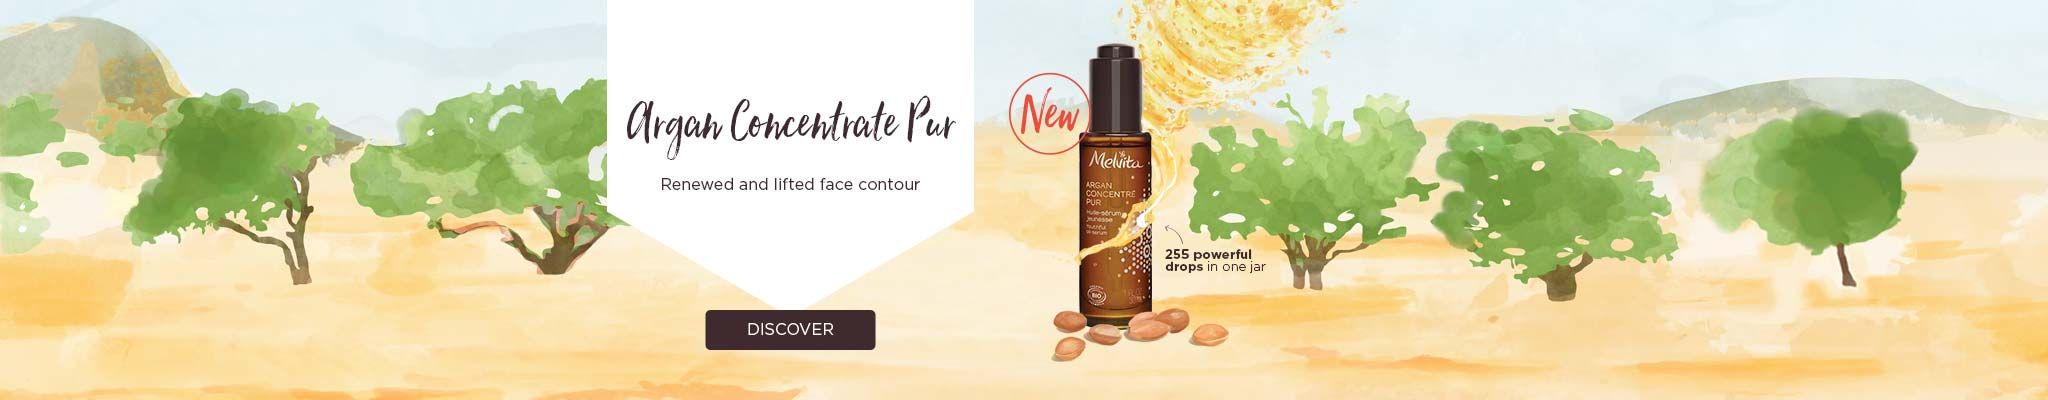 NEW Argan Concentrate Pur